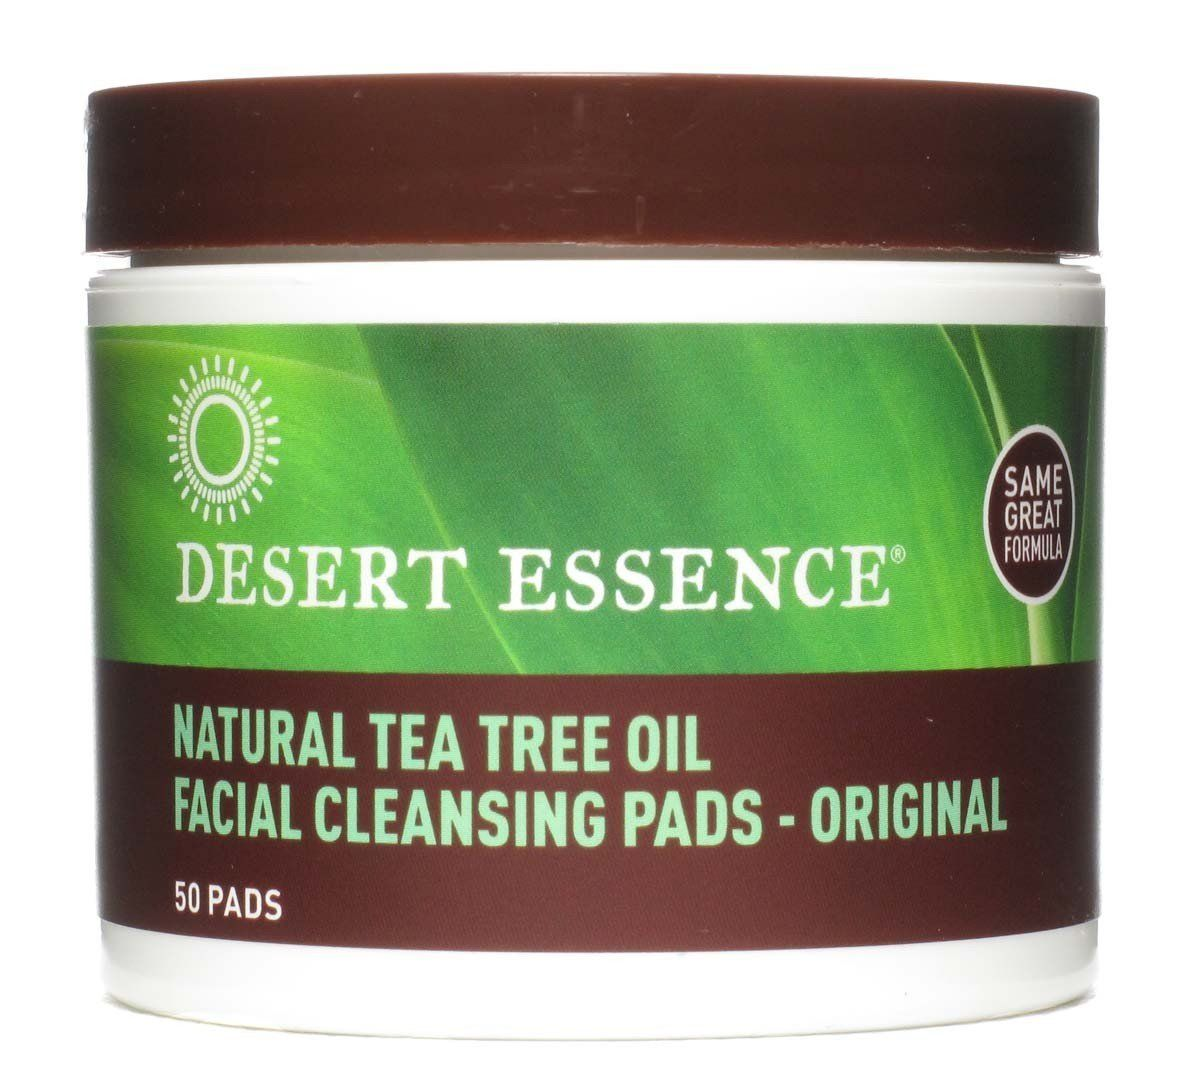 6 Pack - Desert Essence Facial Cleansing Pads, Natural Tea Tree Oil 50 ea Payot - Perform Lift Perform Sculpt Masque - For Mature Skins -50ml/1.6oz